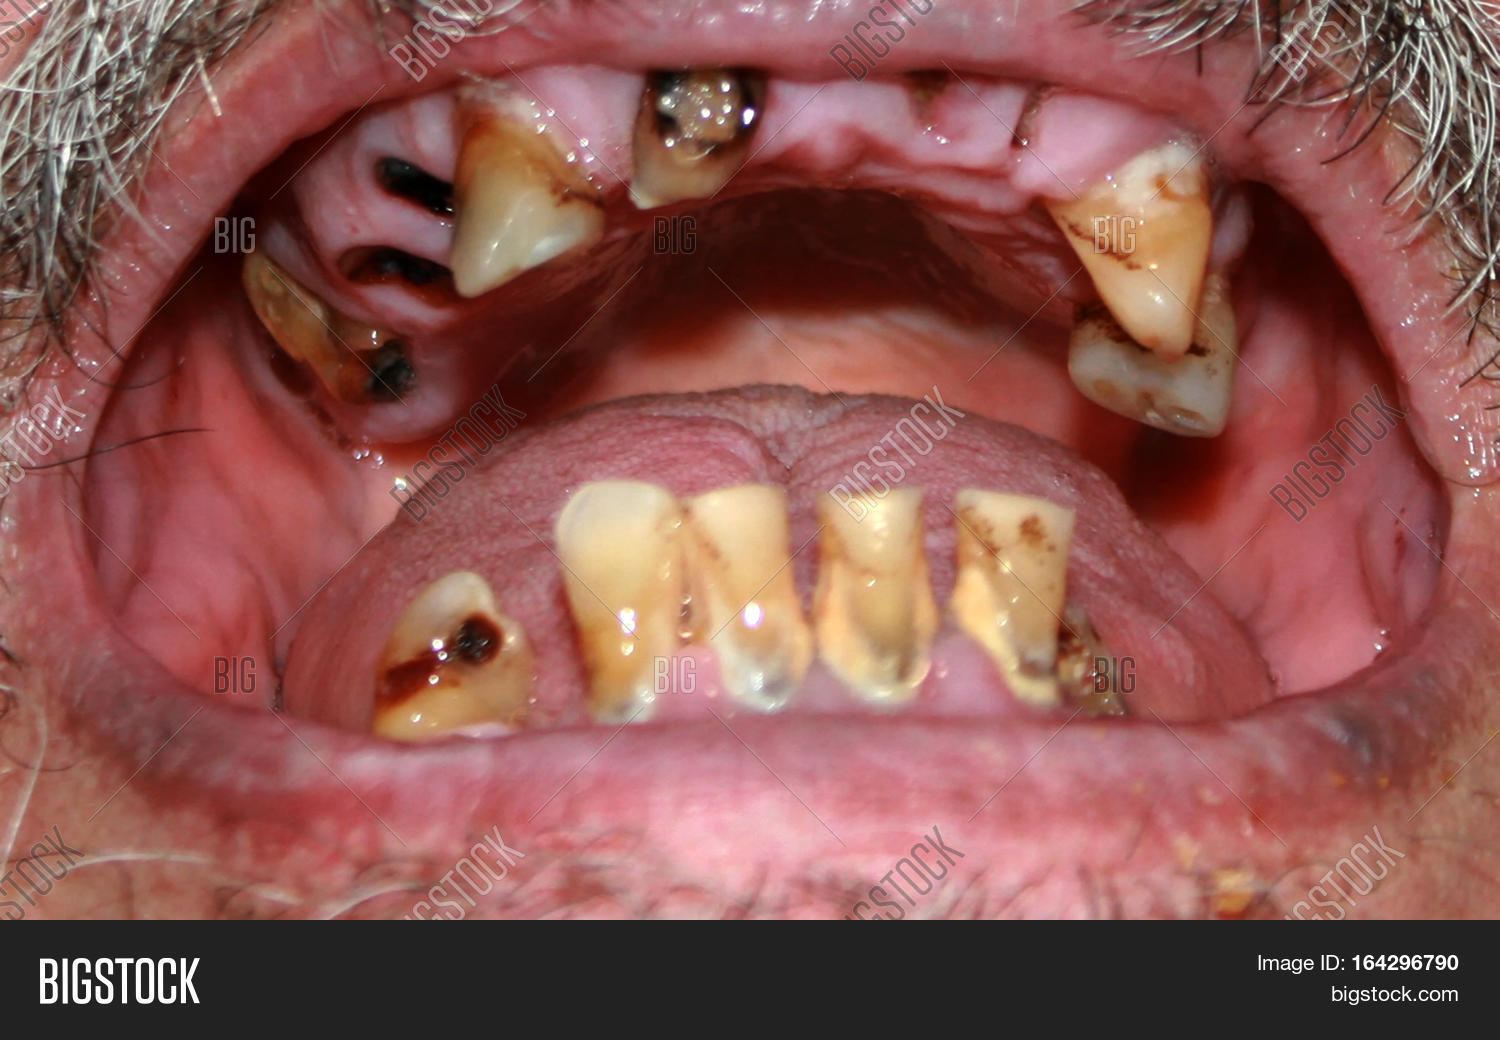 Rotten Bad Teeth Image Photo Free Trial Bigstock